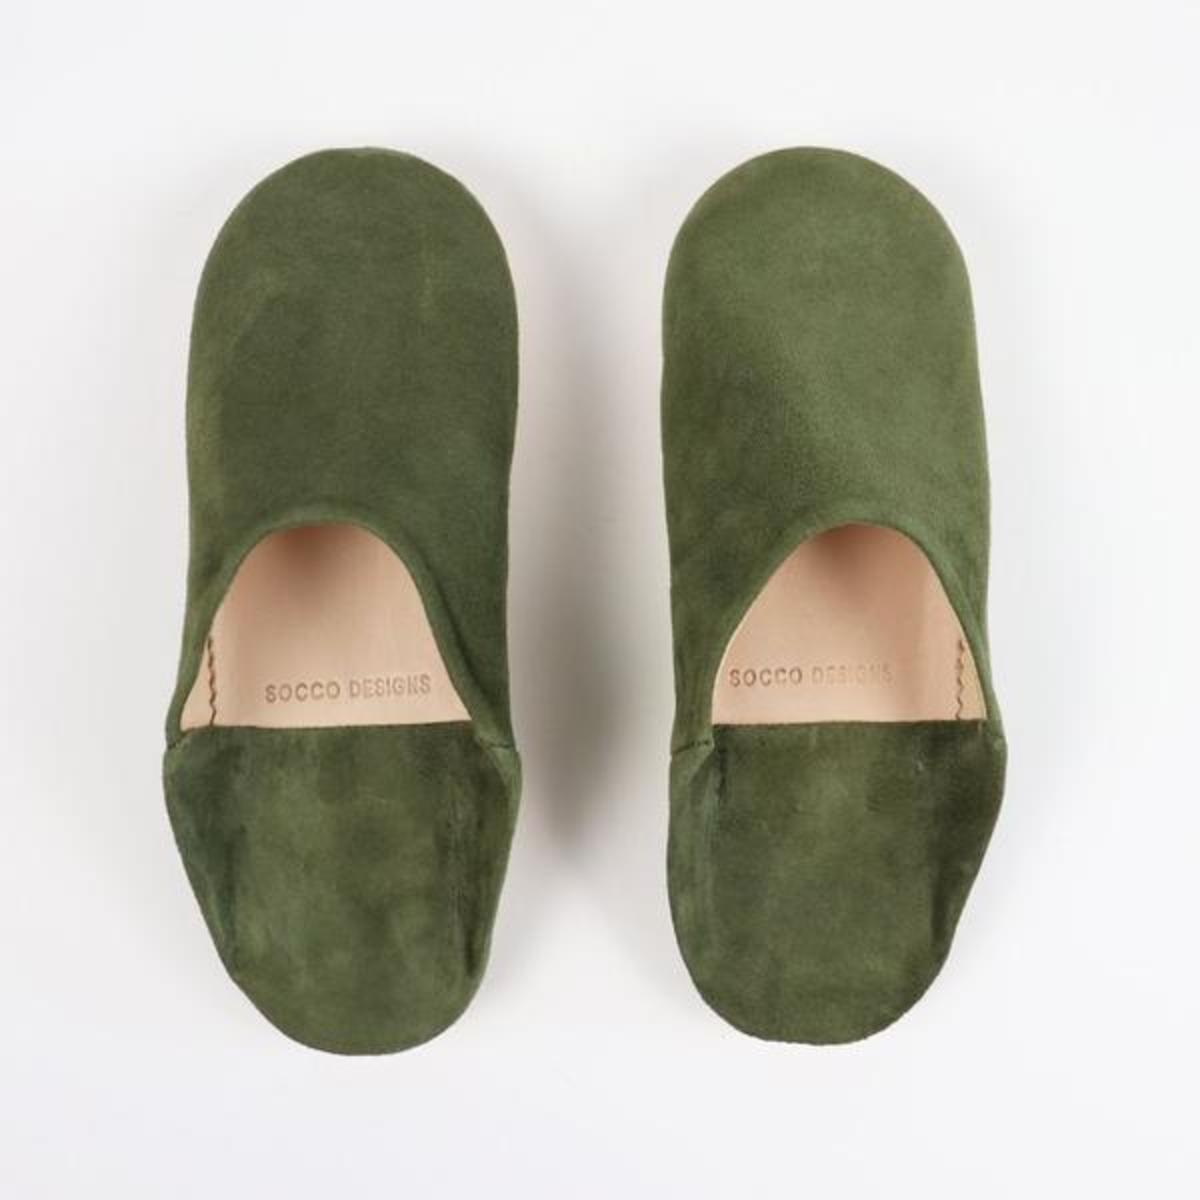 babouche-suede-slippers-socco-for-now-4_600x